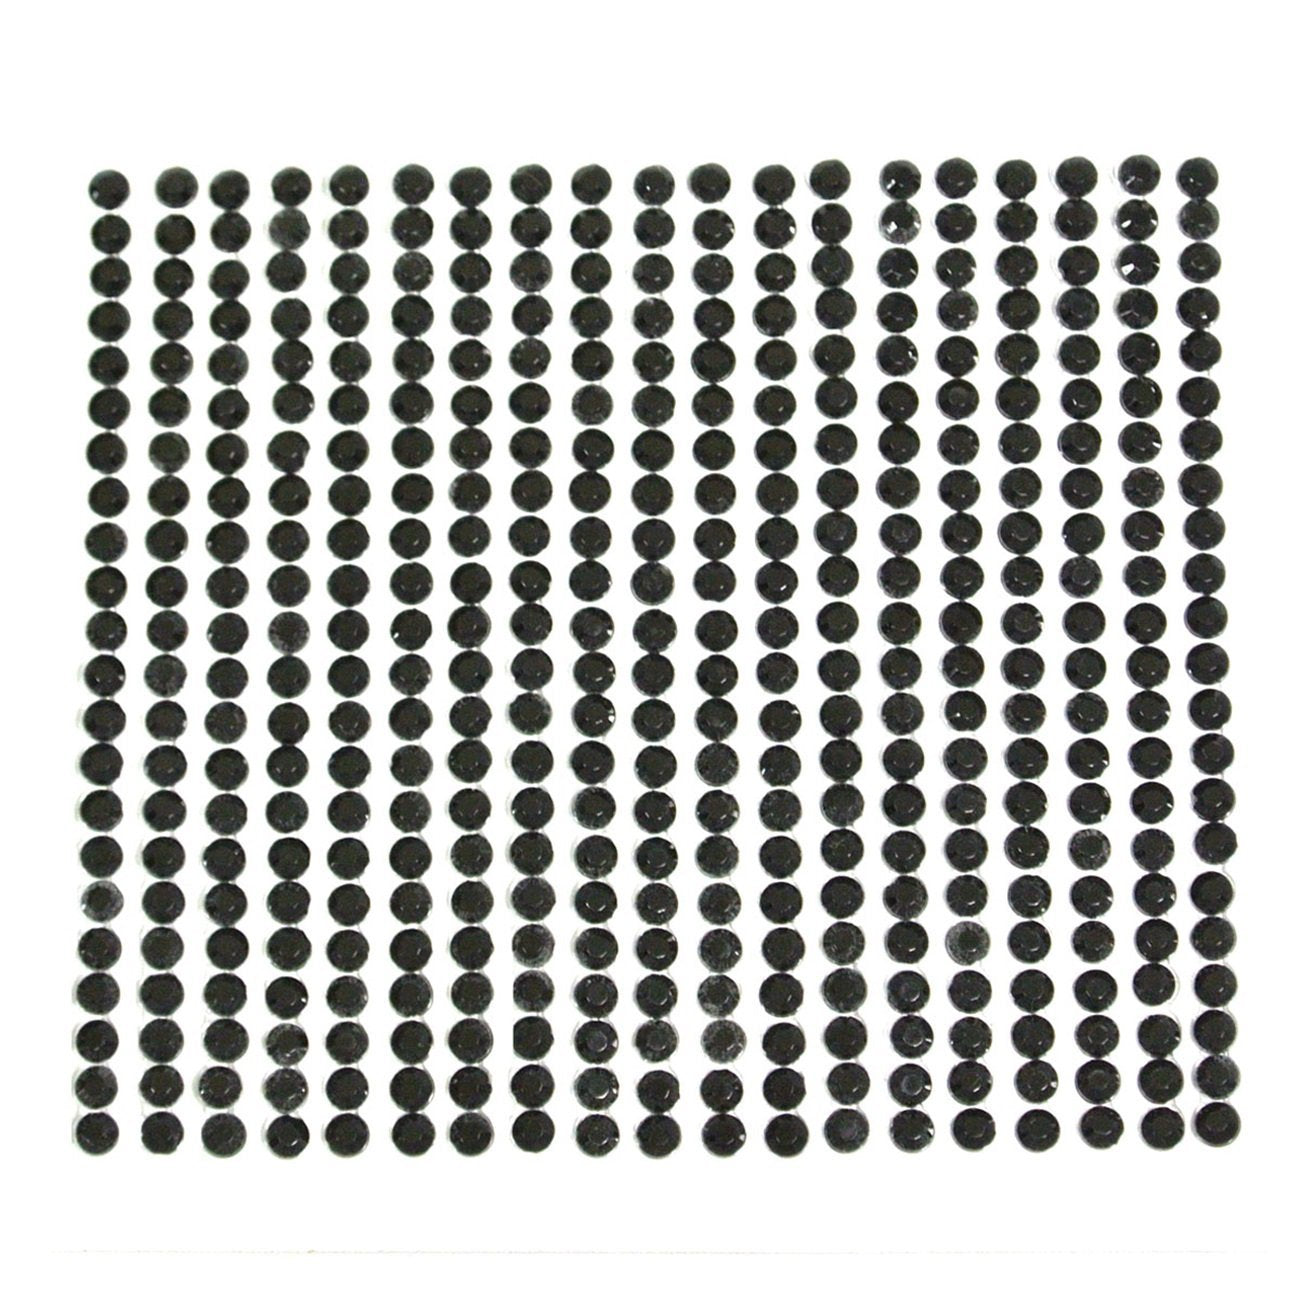 Wrapables Black Diamond Sticker 4mm Adhesive Rhinestones, 1000 pieces